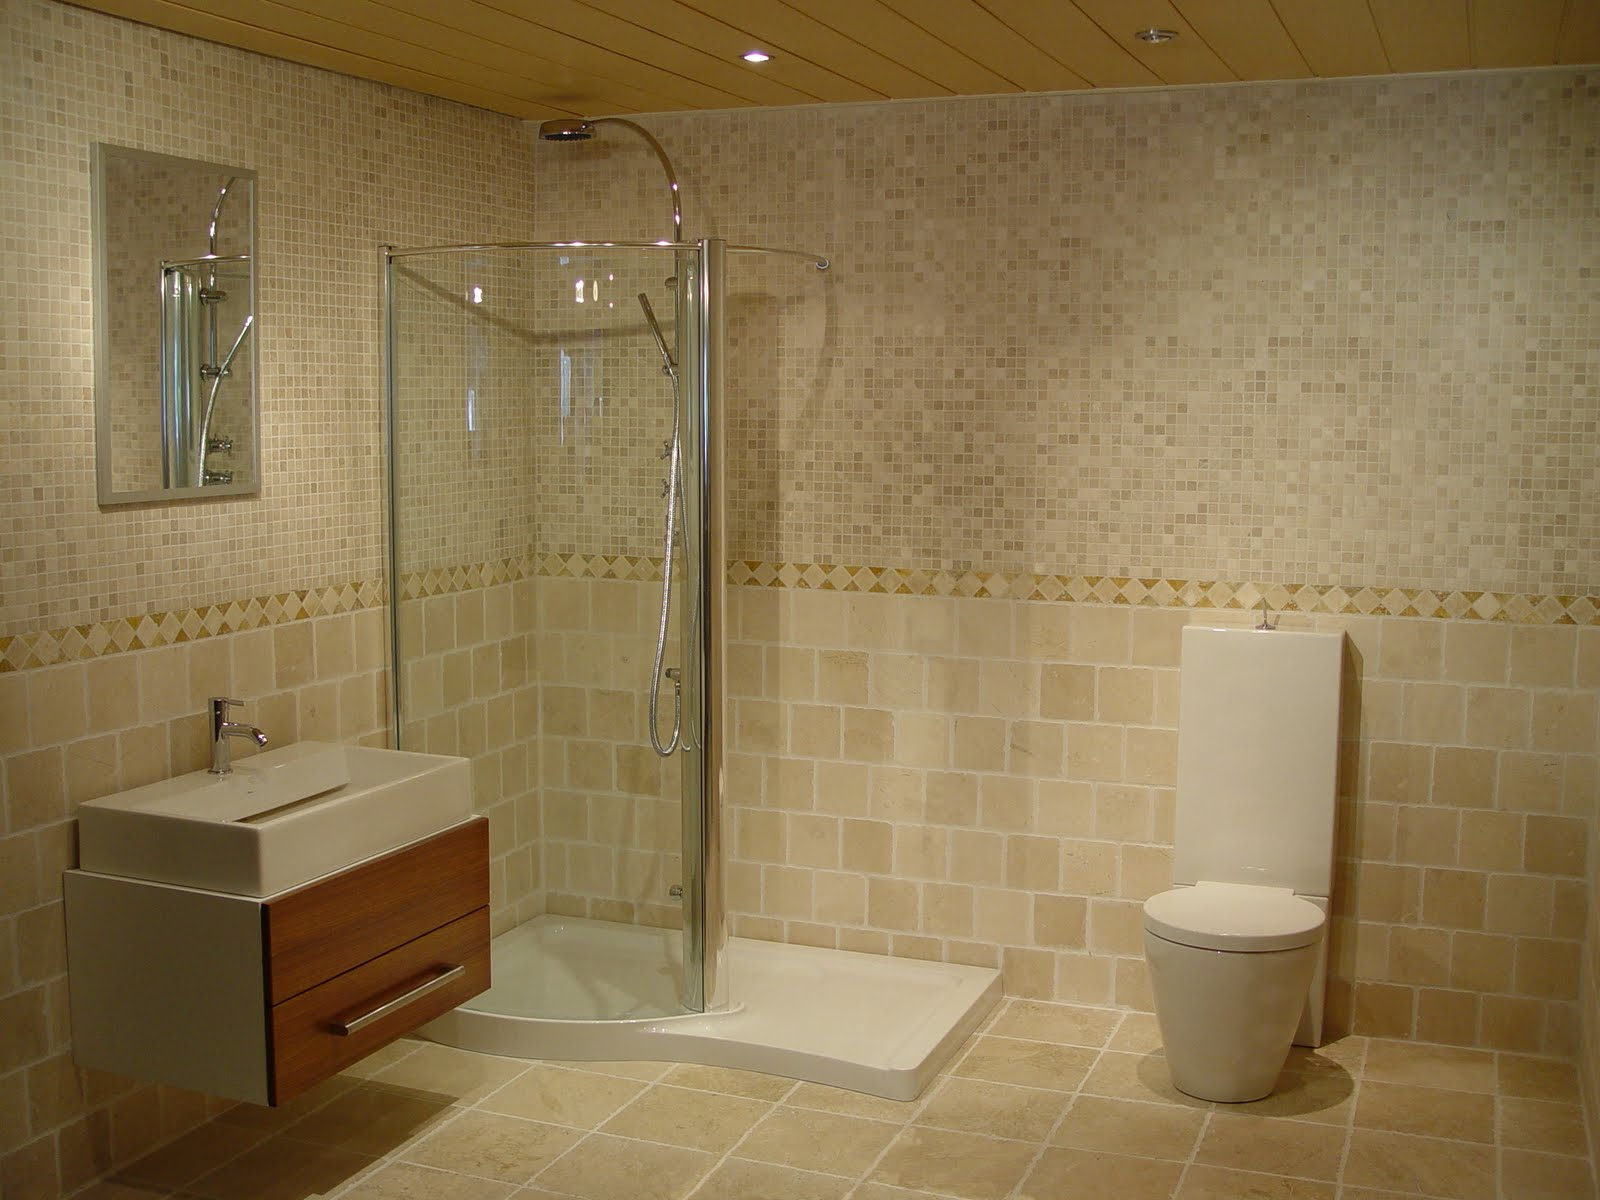 Bathroom+Wall+Tiles+Ideas-Bathroom-Tile-Ideas.jpg